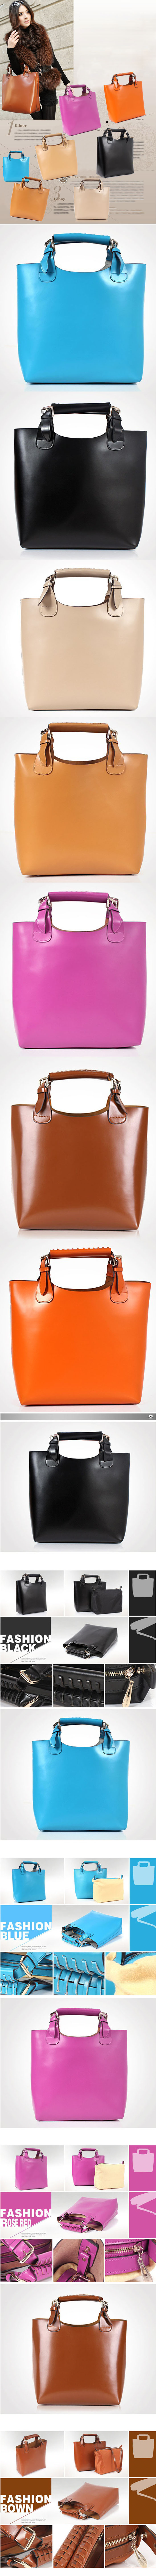 British plain style retro nappa leather candy colors tote handbags